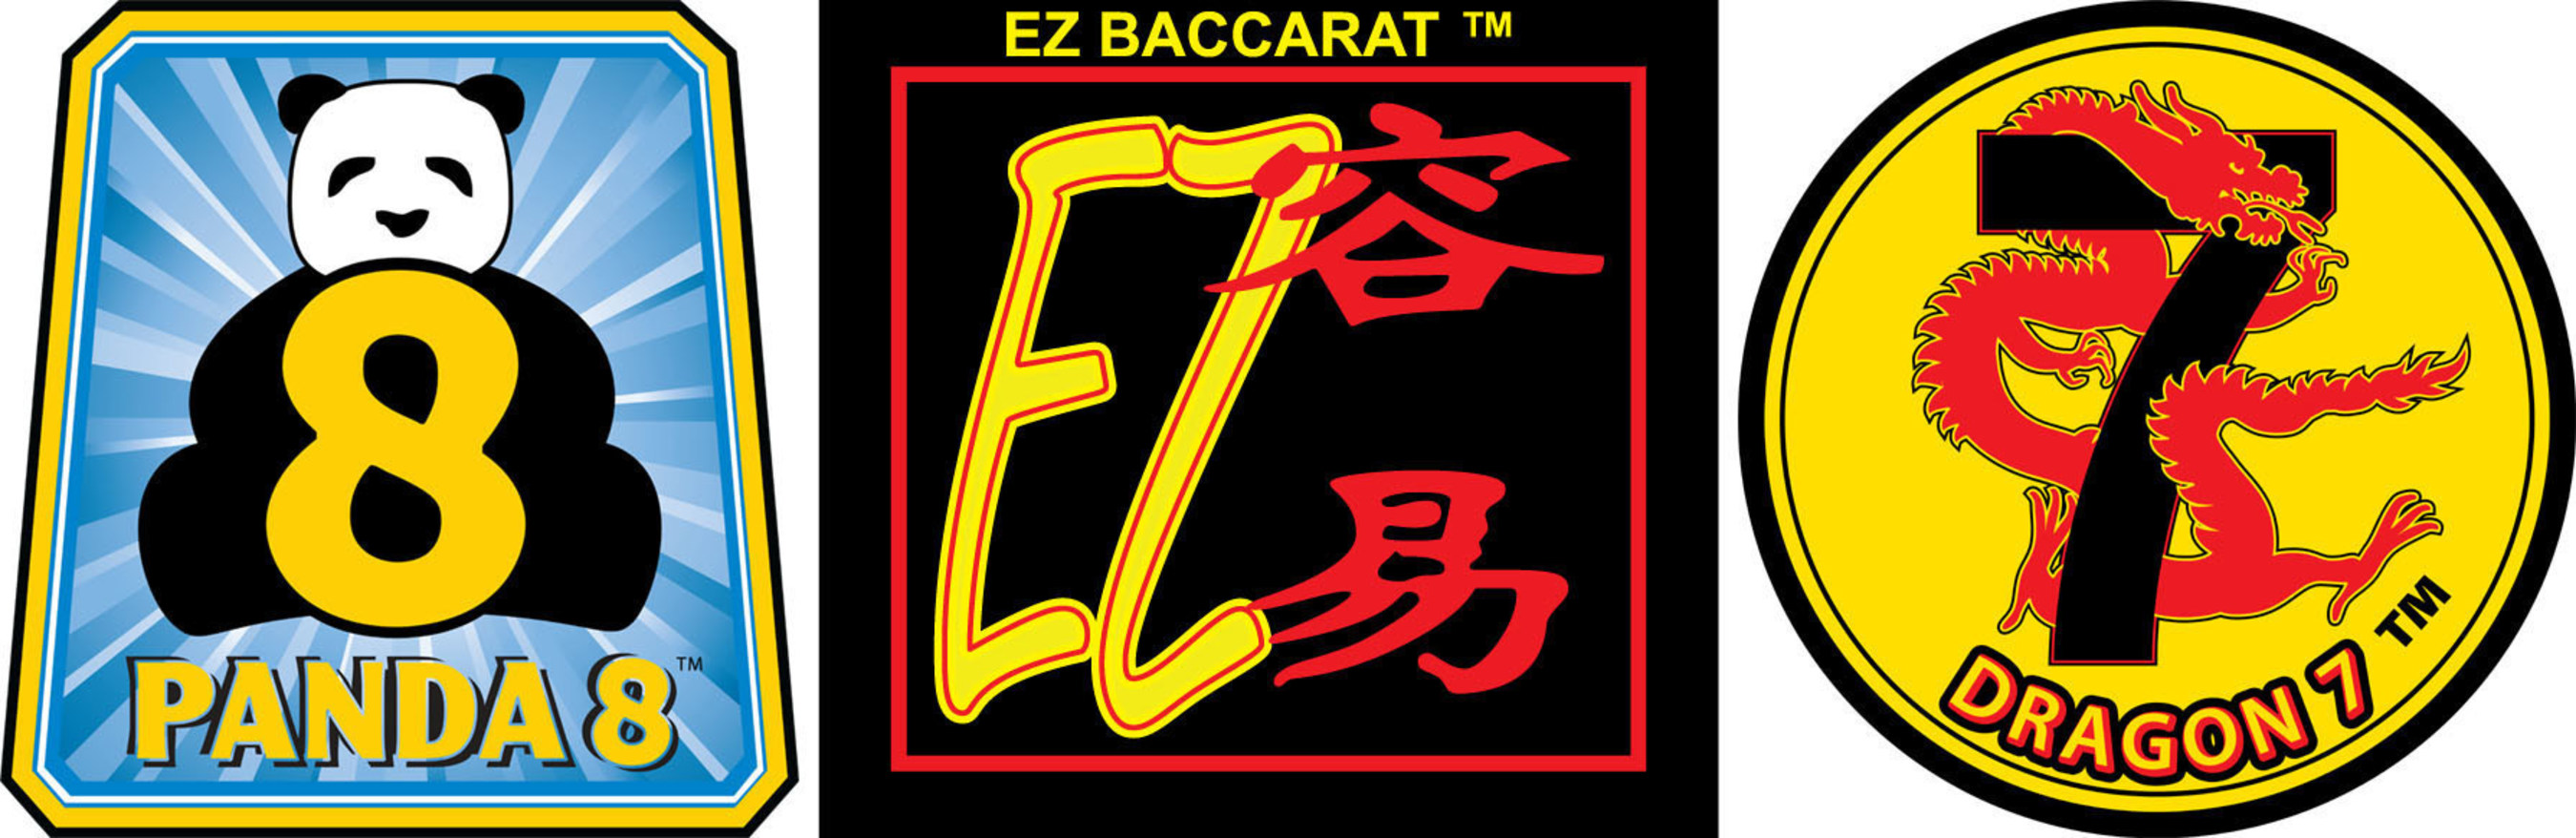 EZ Baccarat' Announces DEQ Systems and LT Game Have Forged a Global Partnership to Distribute EZ Baccarat On Live Multi-Game Systems Worldwide and Table Games in Asia